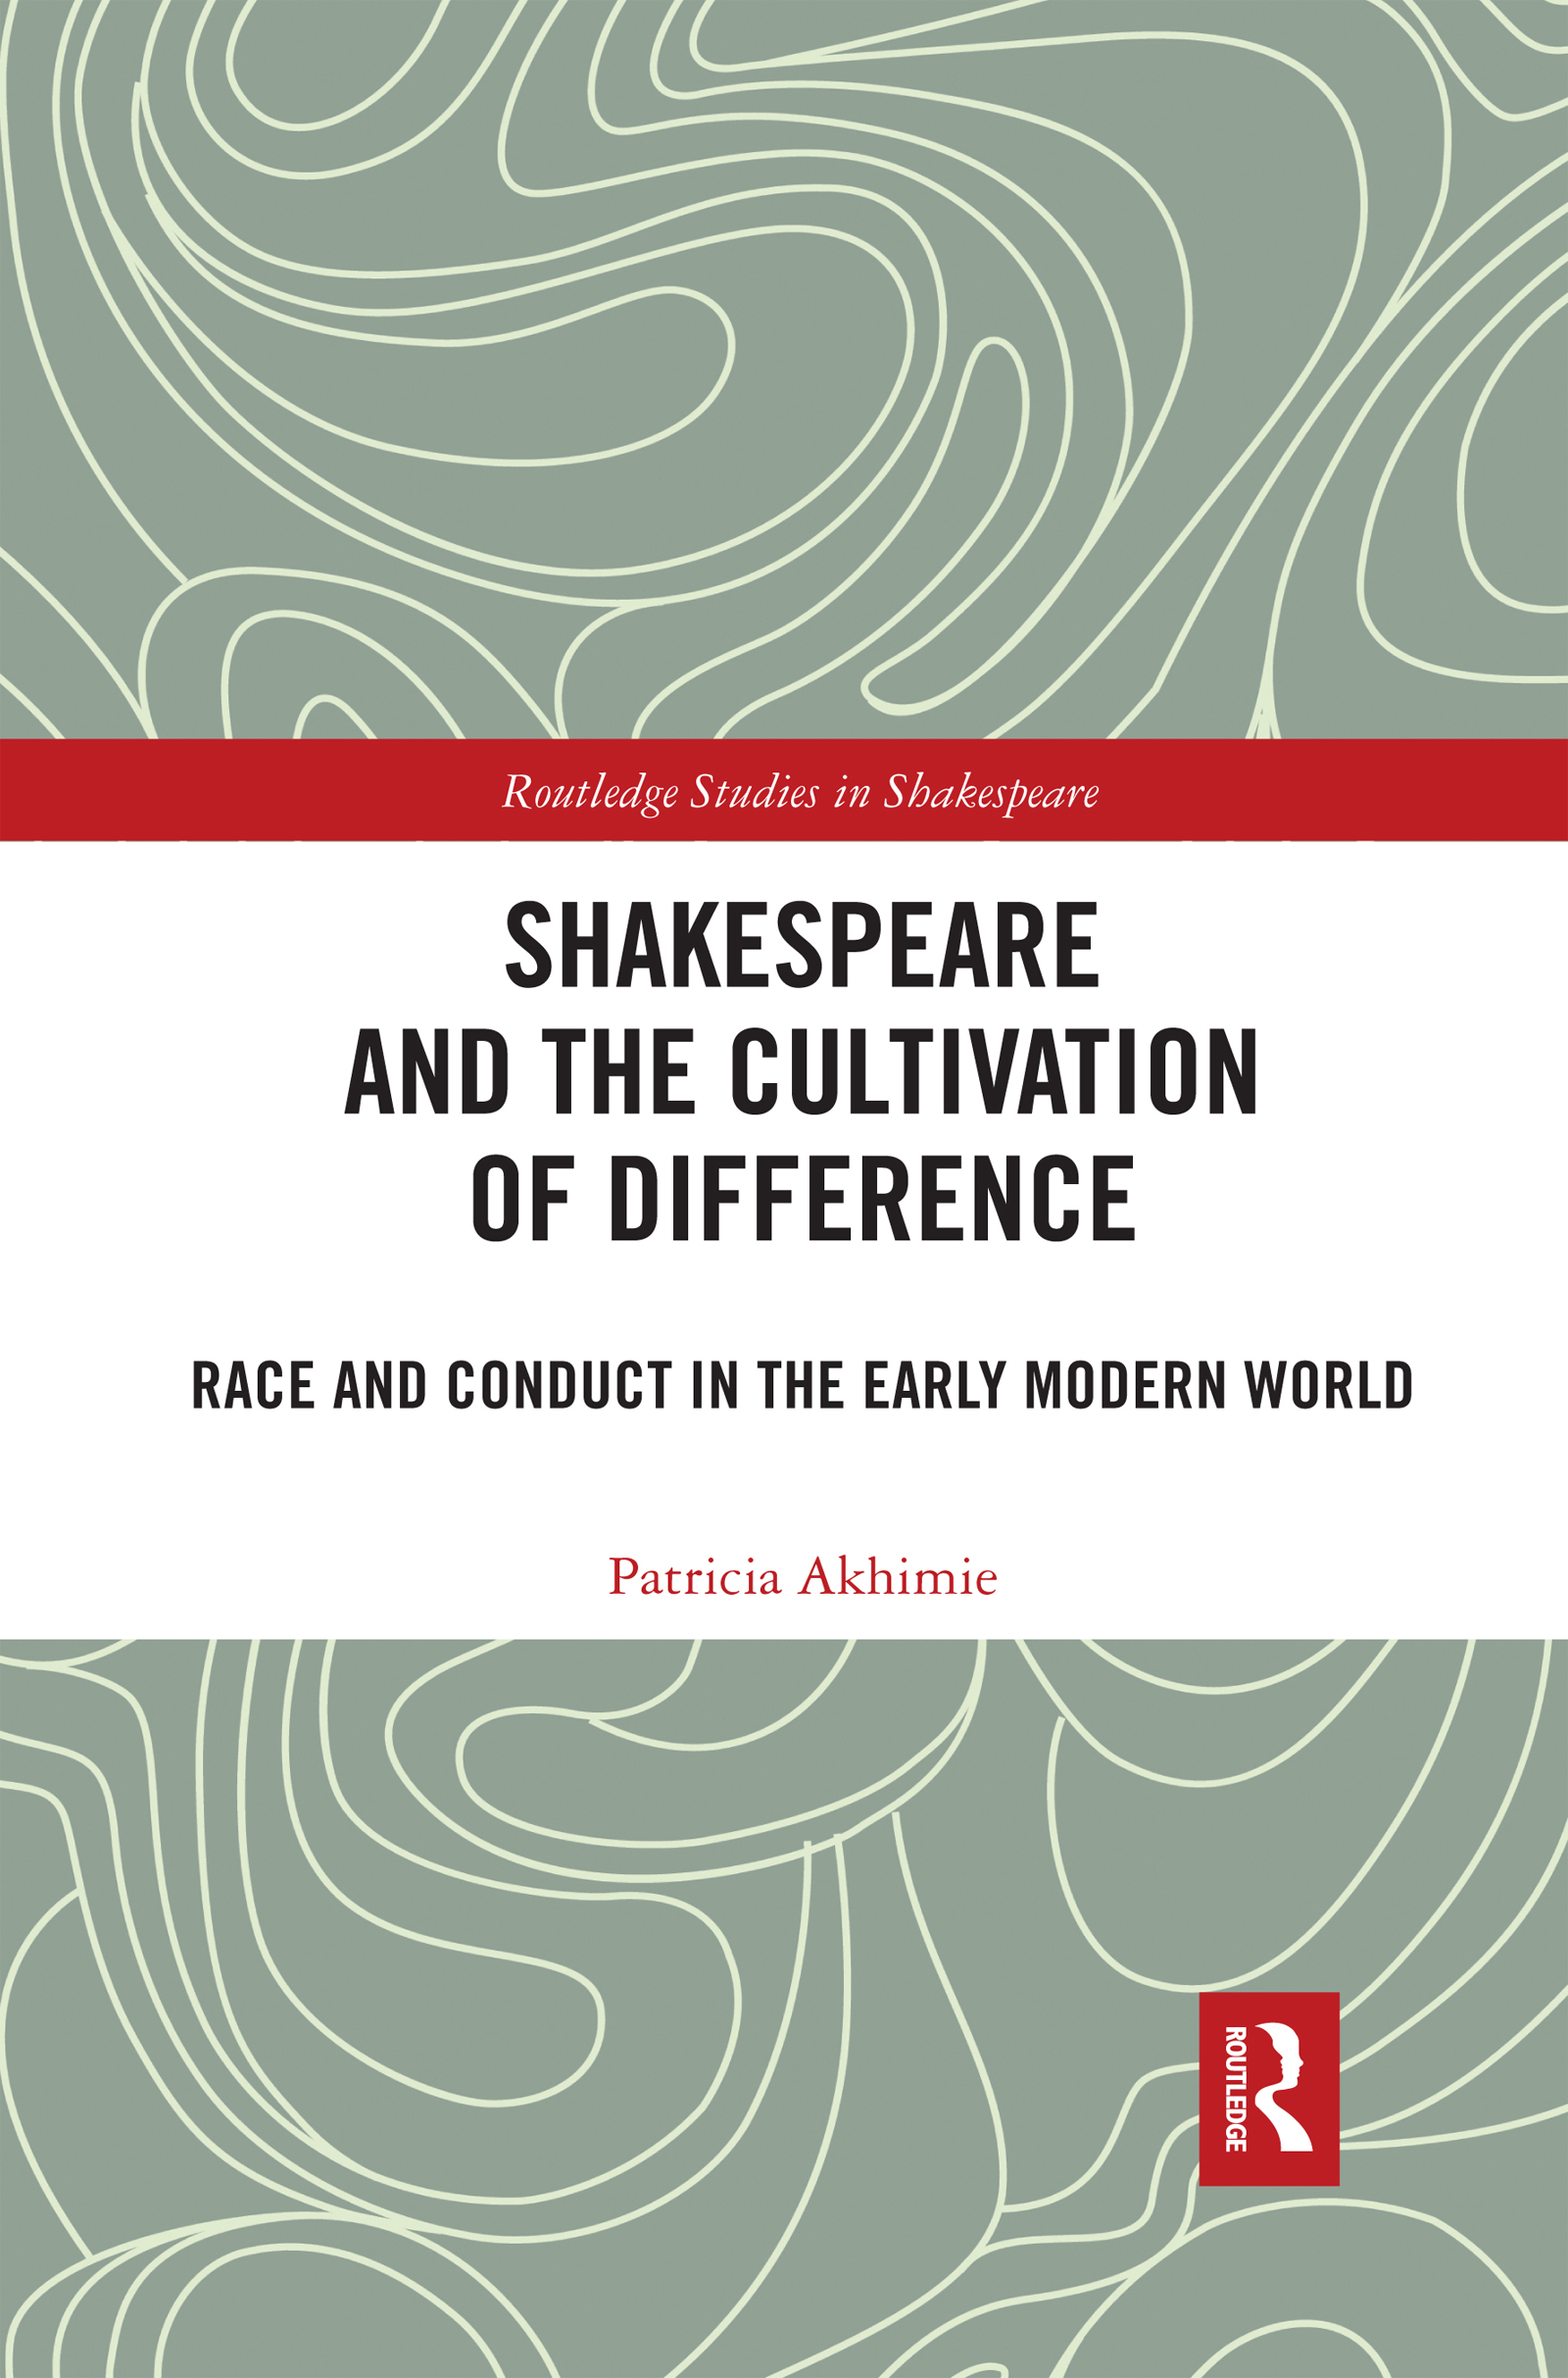 Shakespeare and the Cultivation of Difference